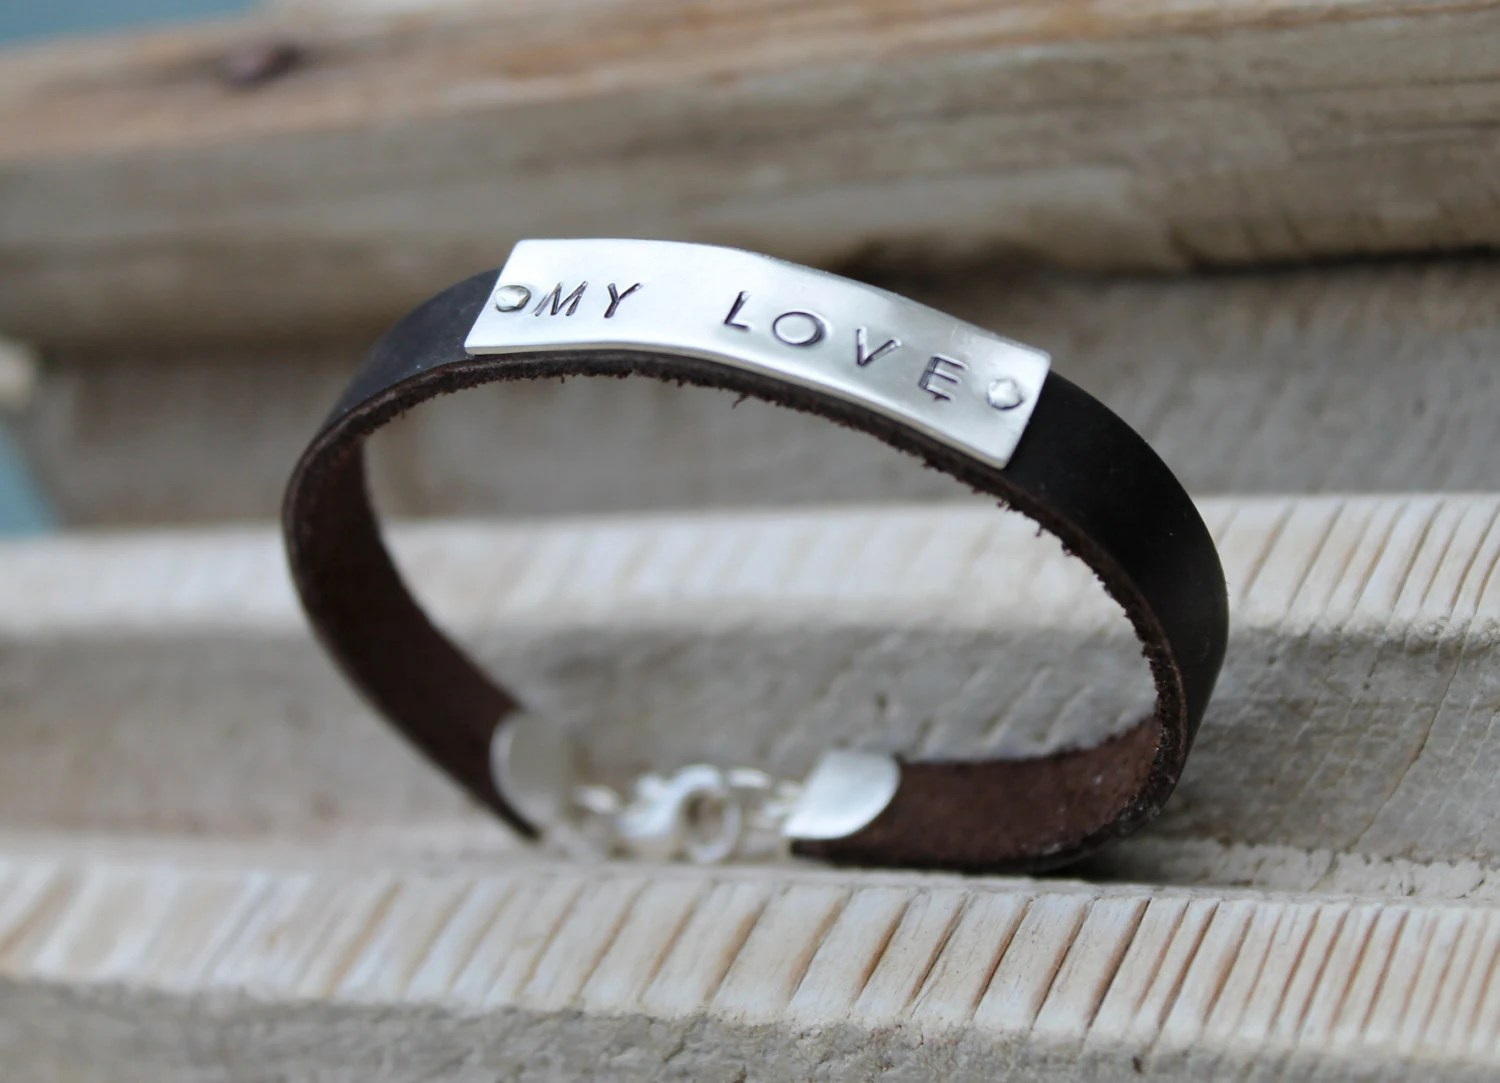 Aweinspiring Mentors Personalized Mens Personalized Lear Mens Lear Bracelet Personalized Gifts Mens Personalized Lear Mens Lear Bracelet Bracelet gifts Engraved Gifts For Men